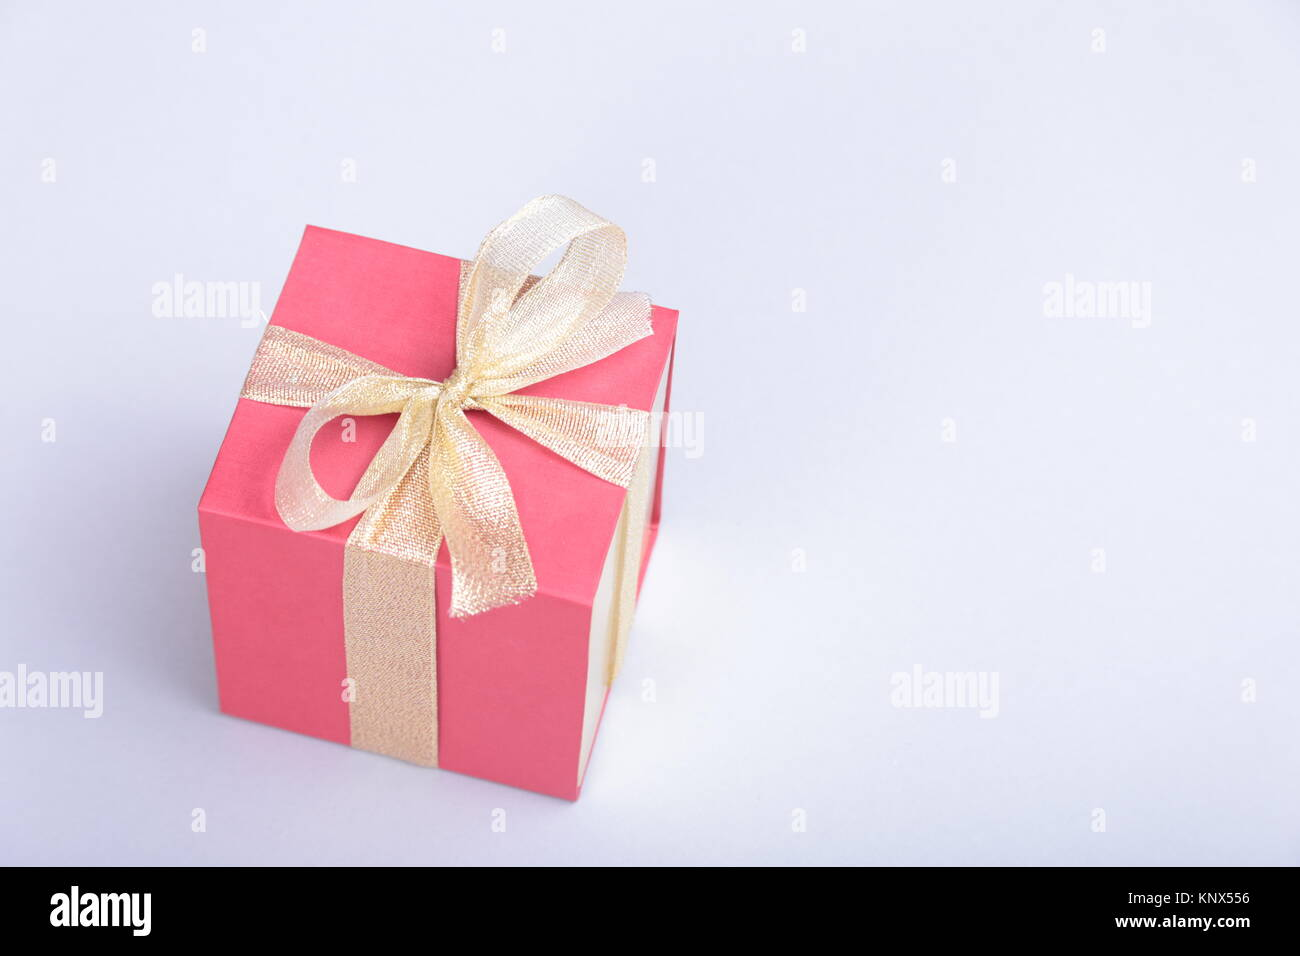 Black Gift Boxes Red Bow Stock Photos & Black Gift Boxes Red Bow ...